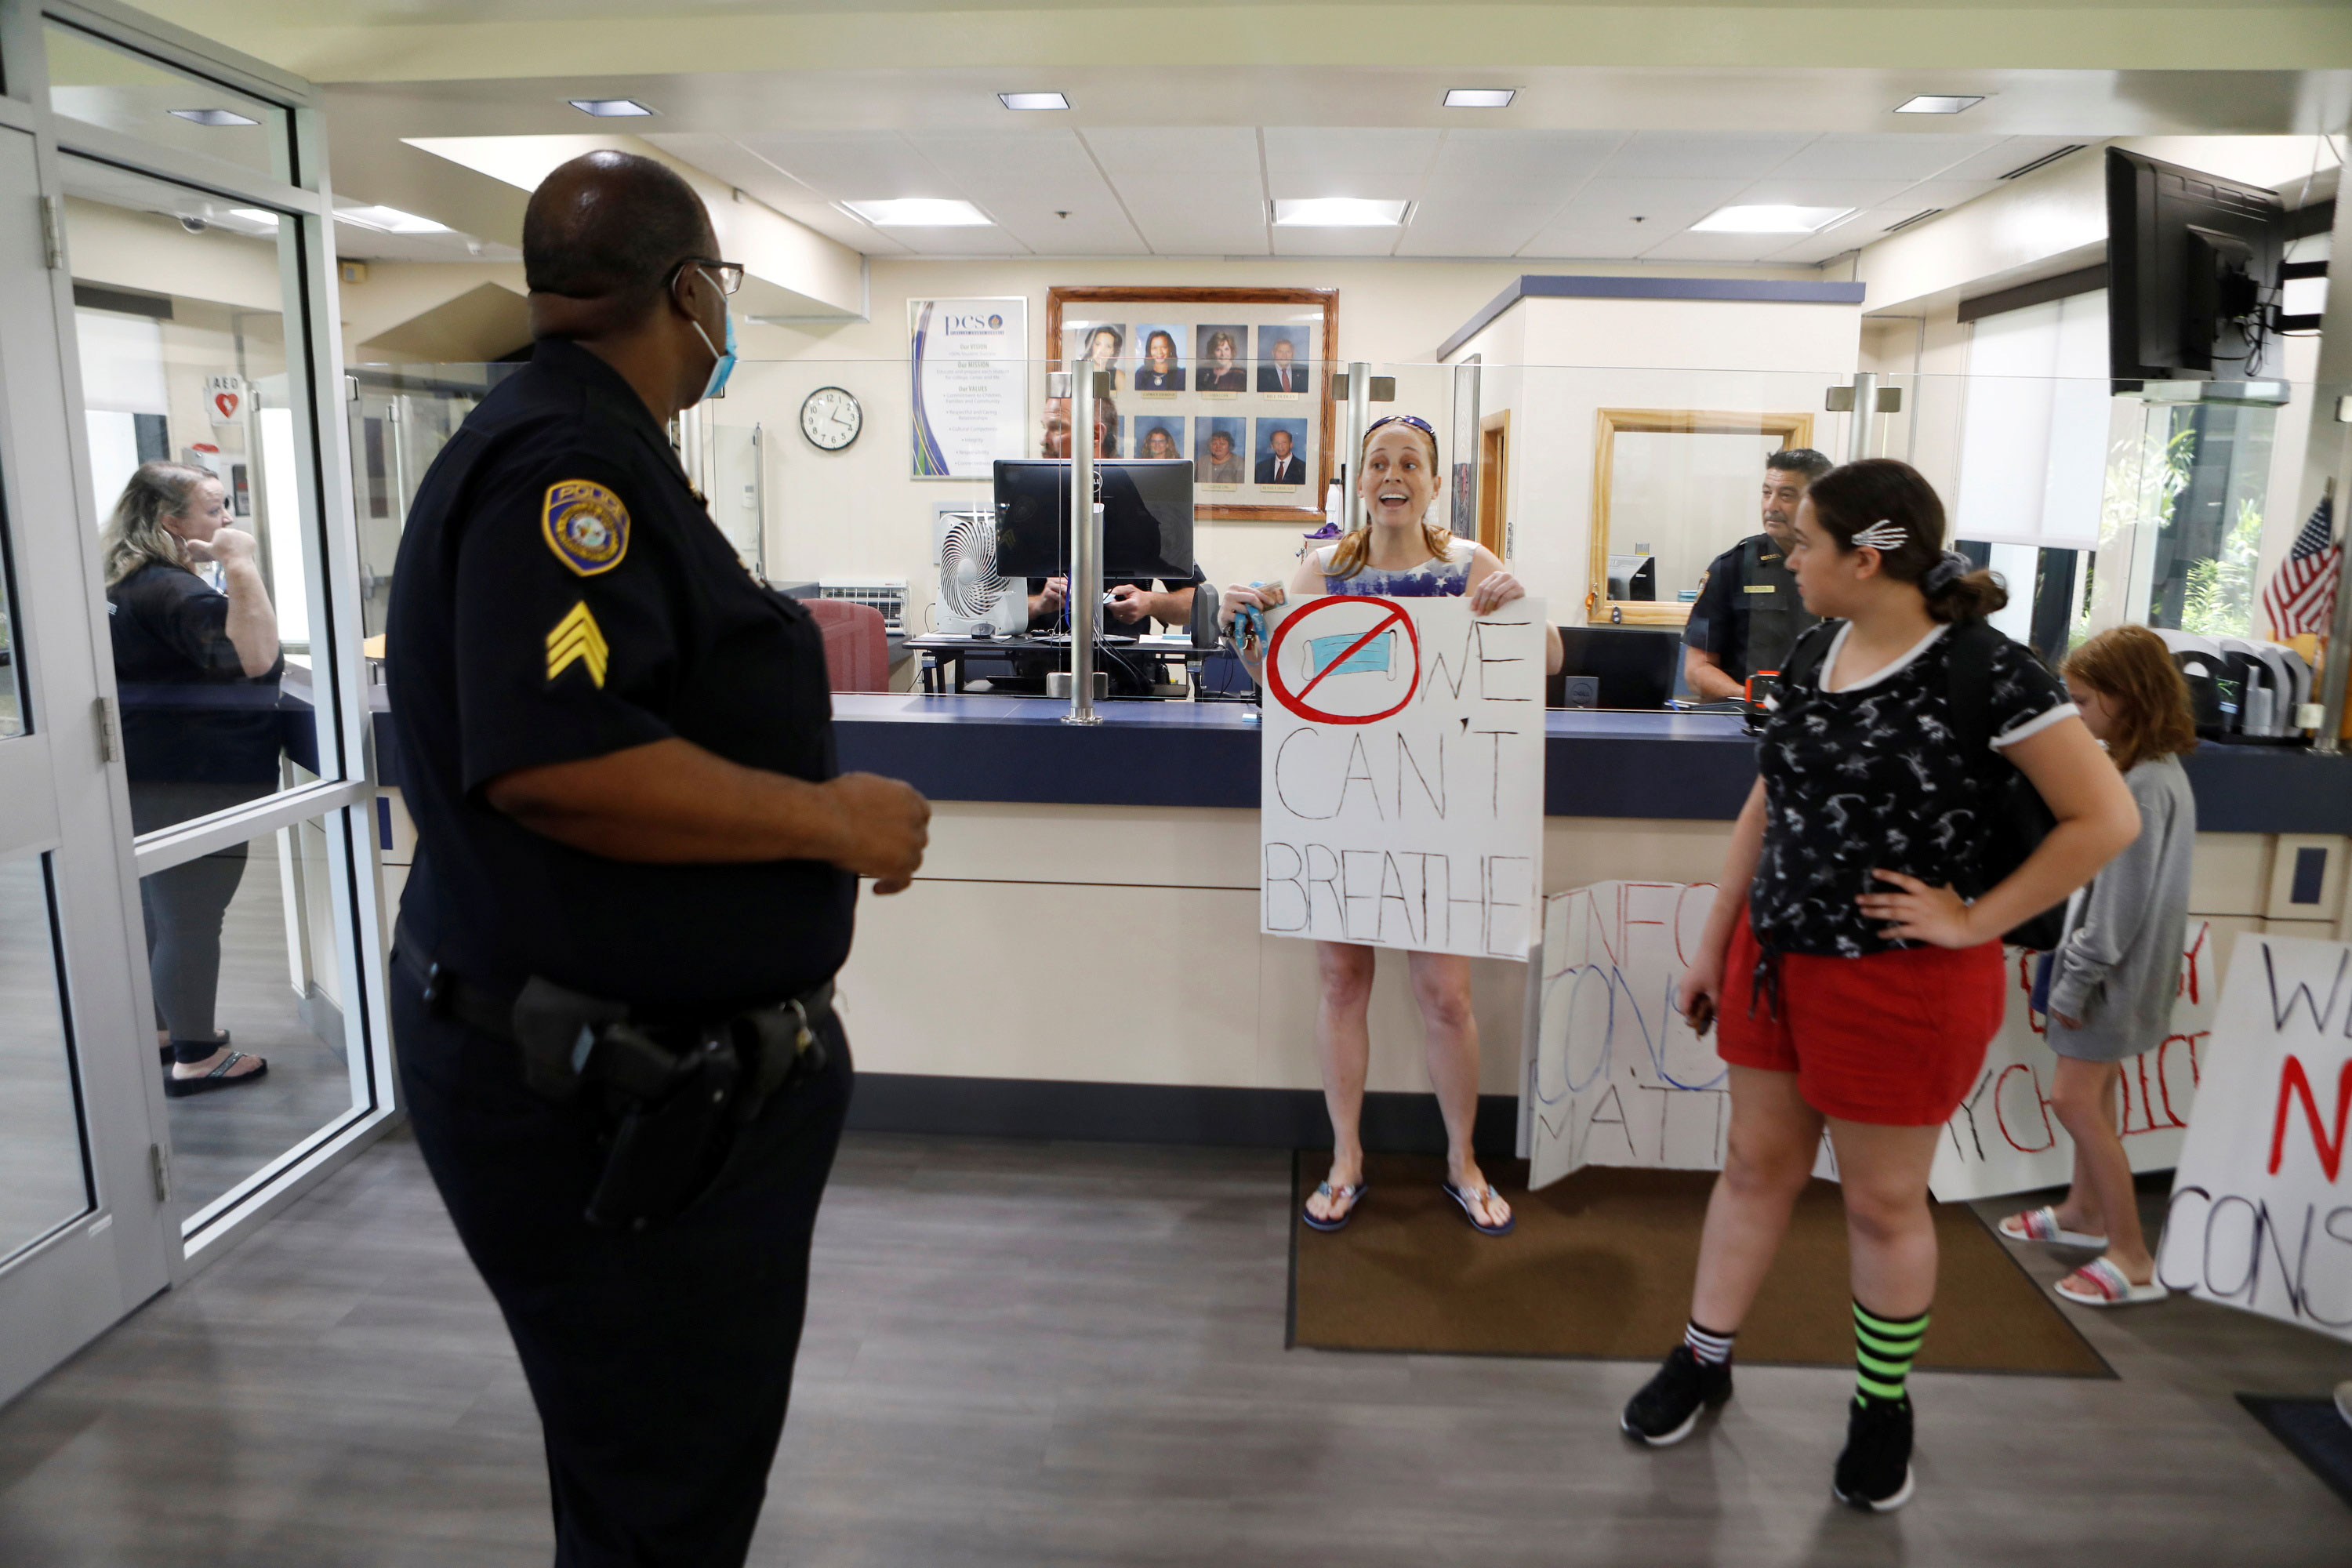 A parent confronts a police officer while protesting against wearing masks in schools before the special called school board workshop at the Pinellas County Schools Administration Building in Largo, Florida, on August 9.